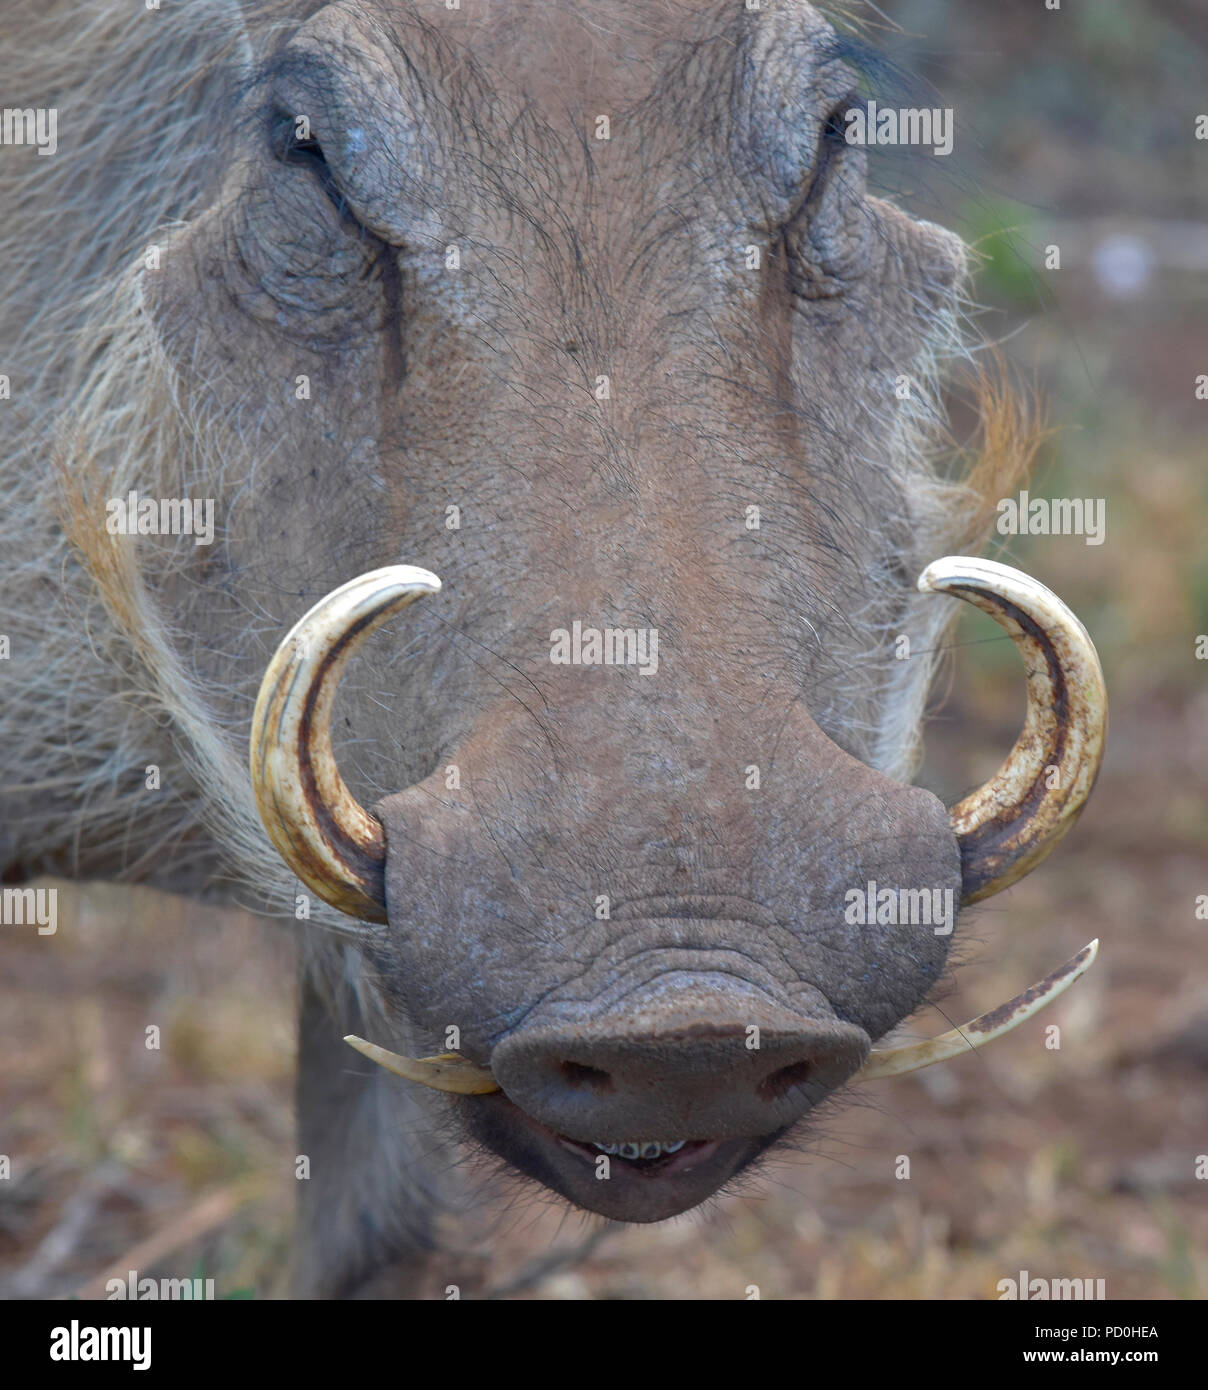 South Africa, a fantastic travel destination to experience third and first world together. Warthog close-up showing curved tusks. - Stock Image